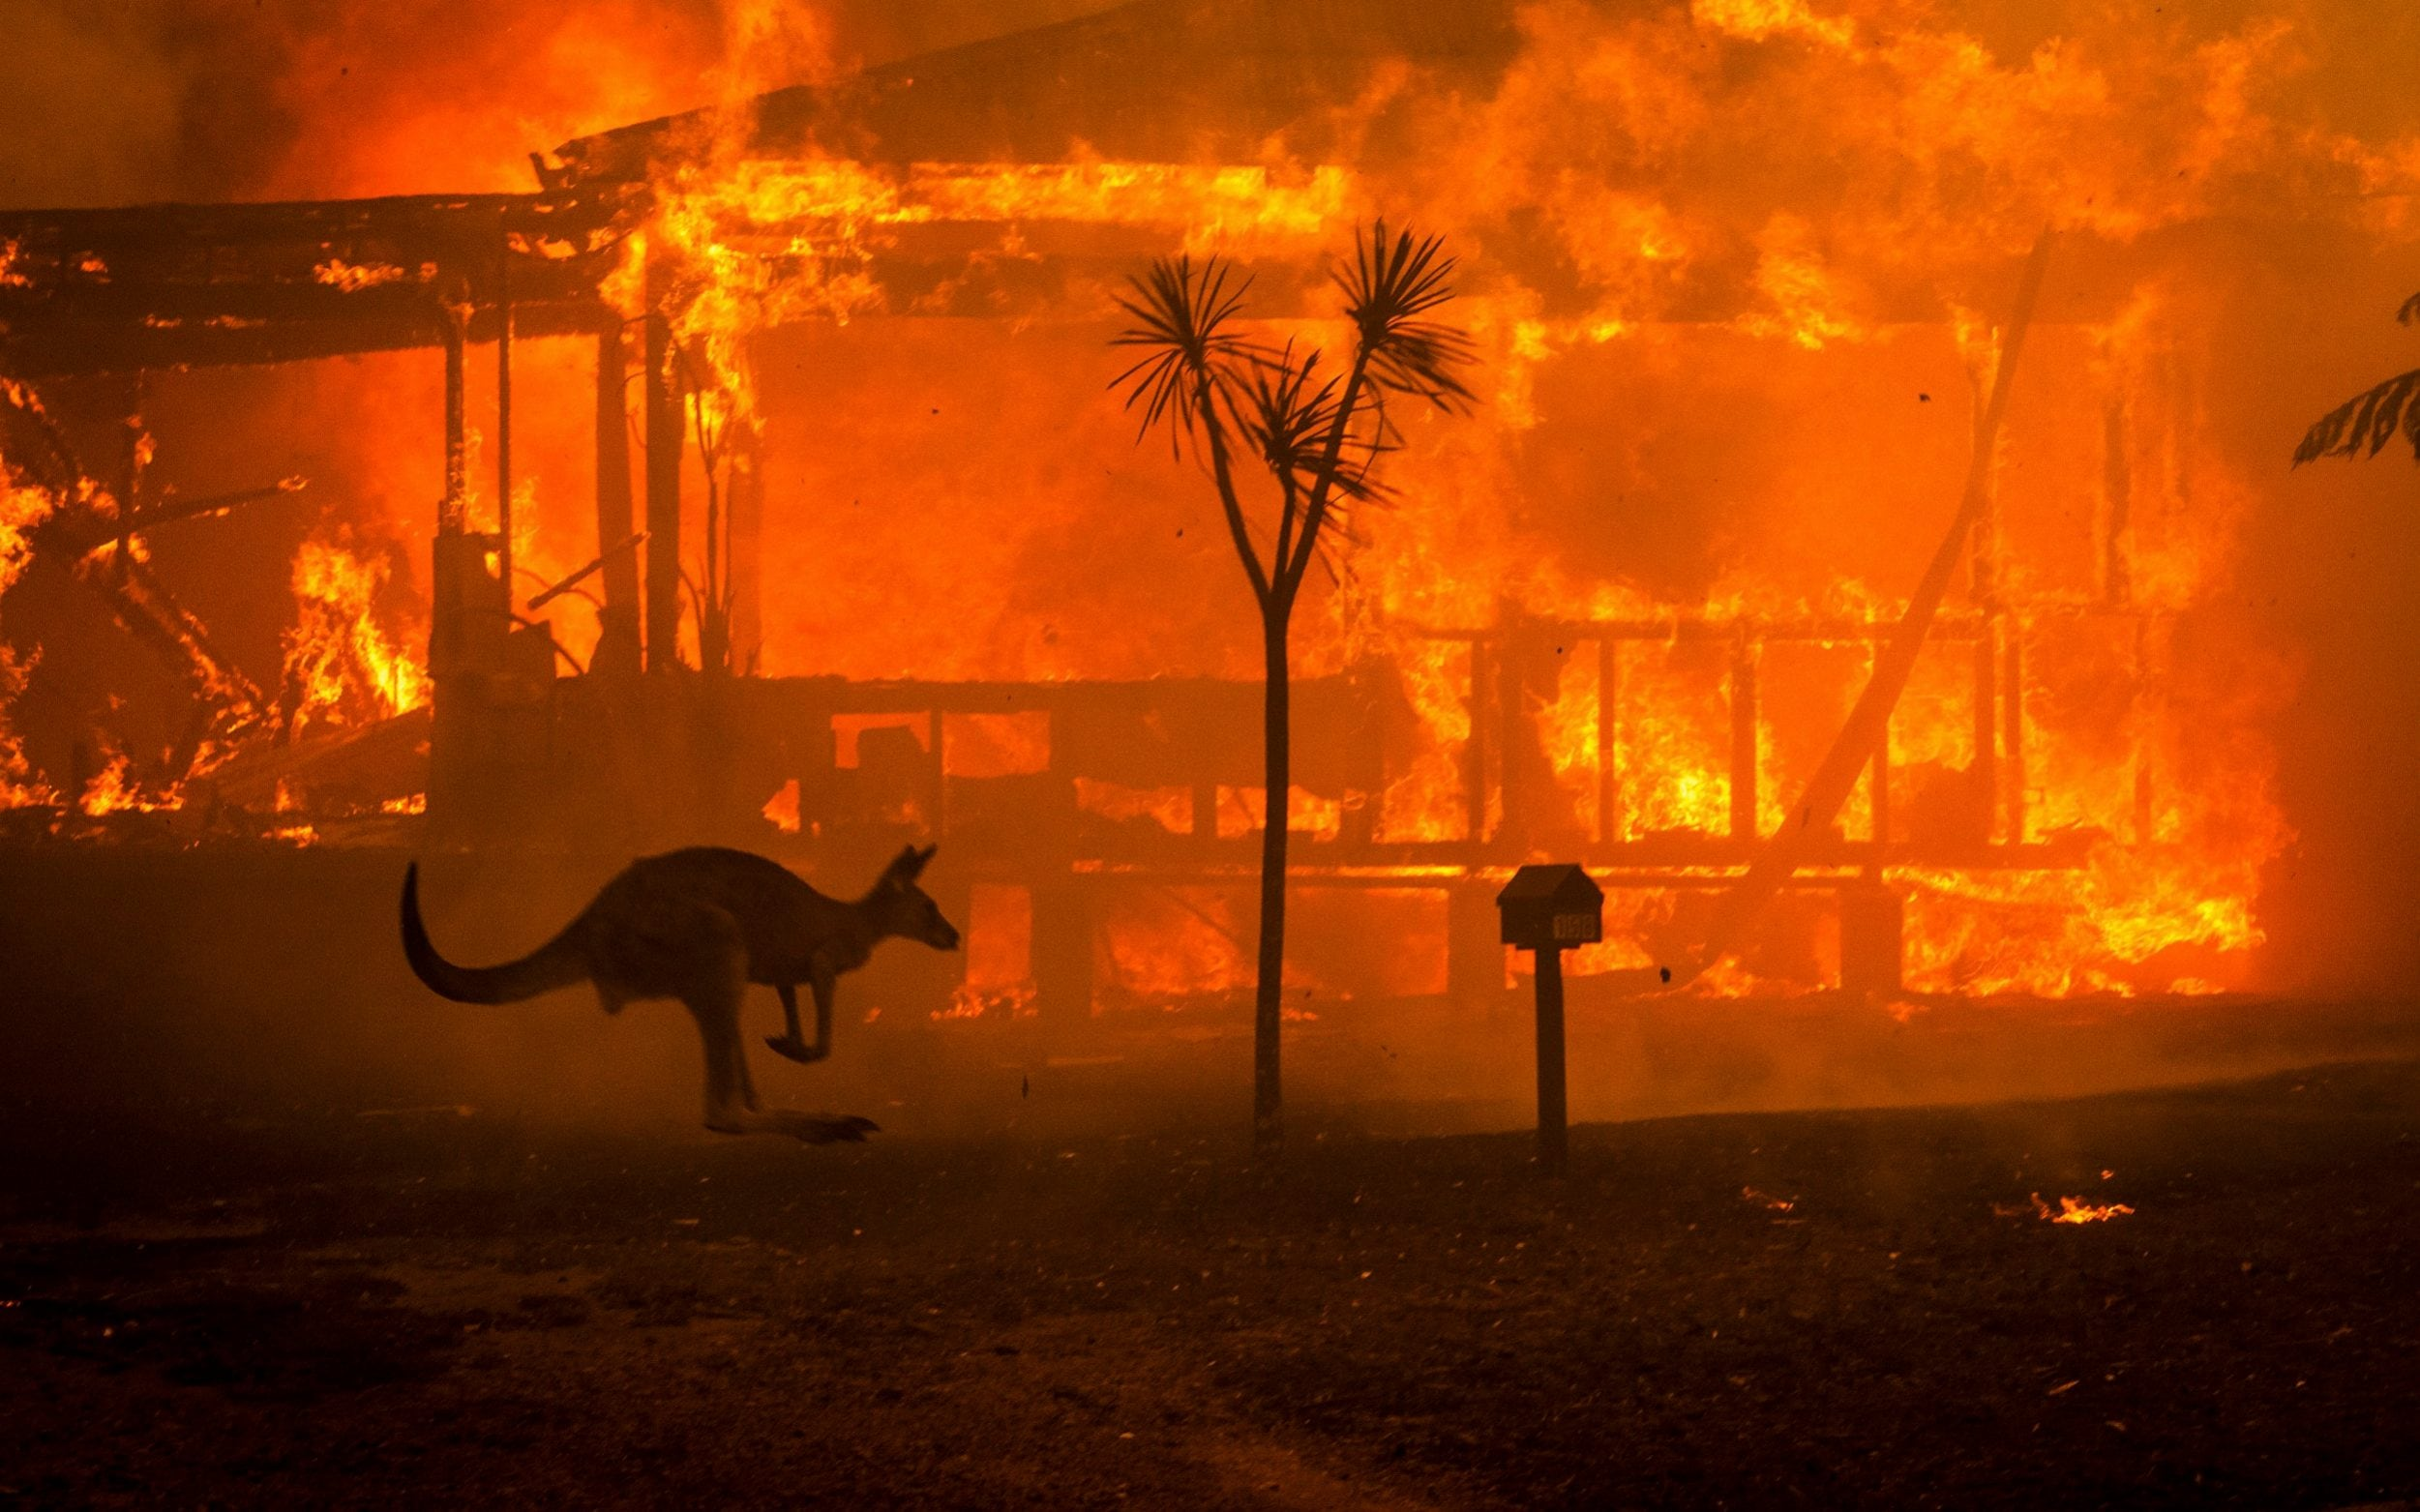 Australian bushfires: Military deployed to help devastated communities as death toll rises